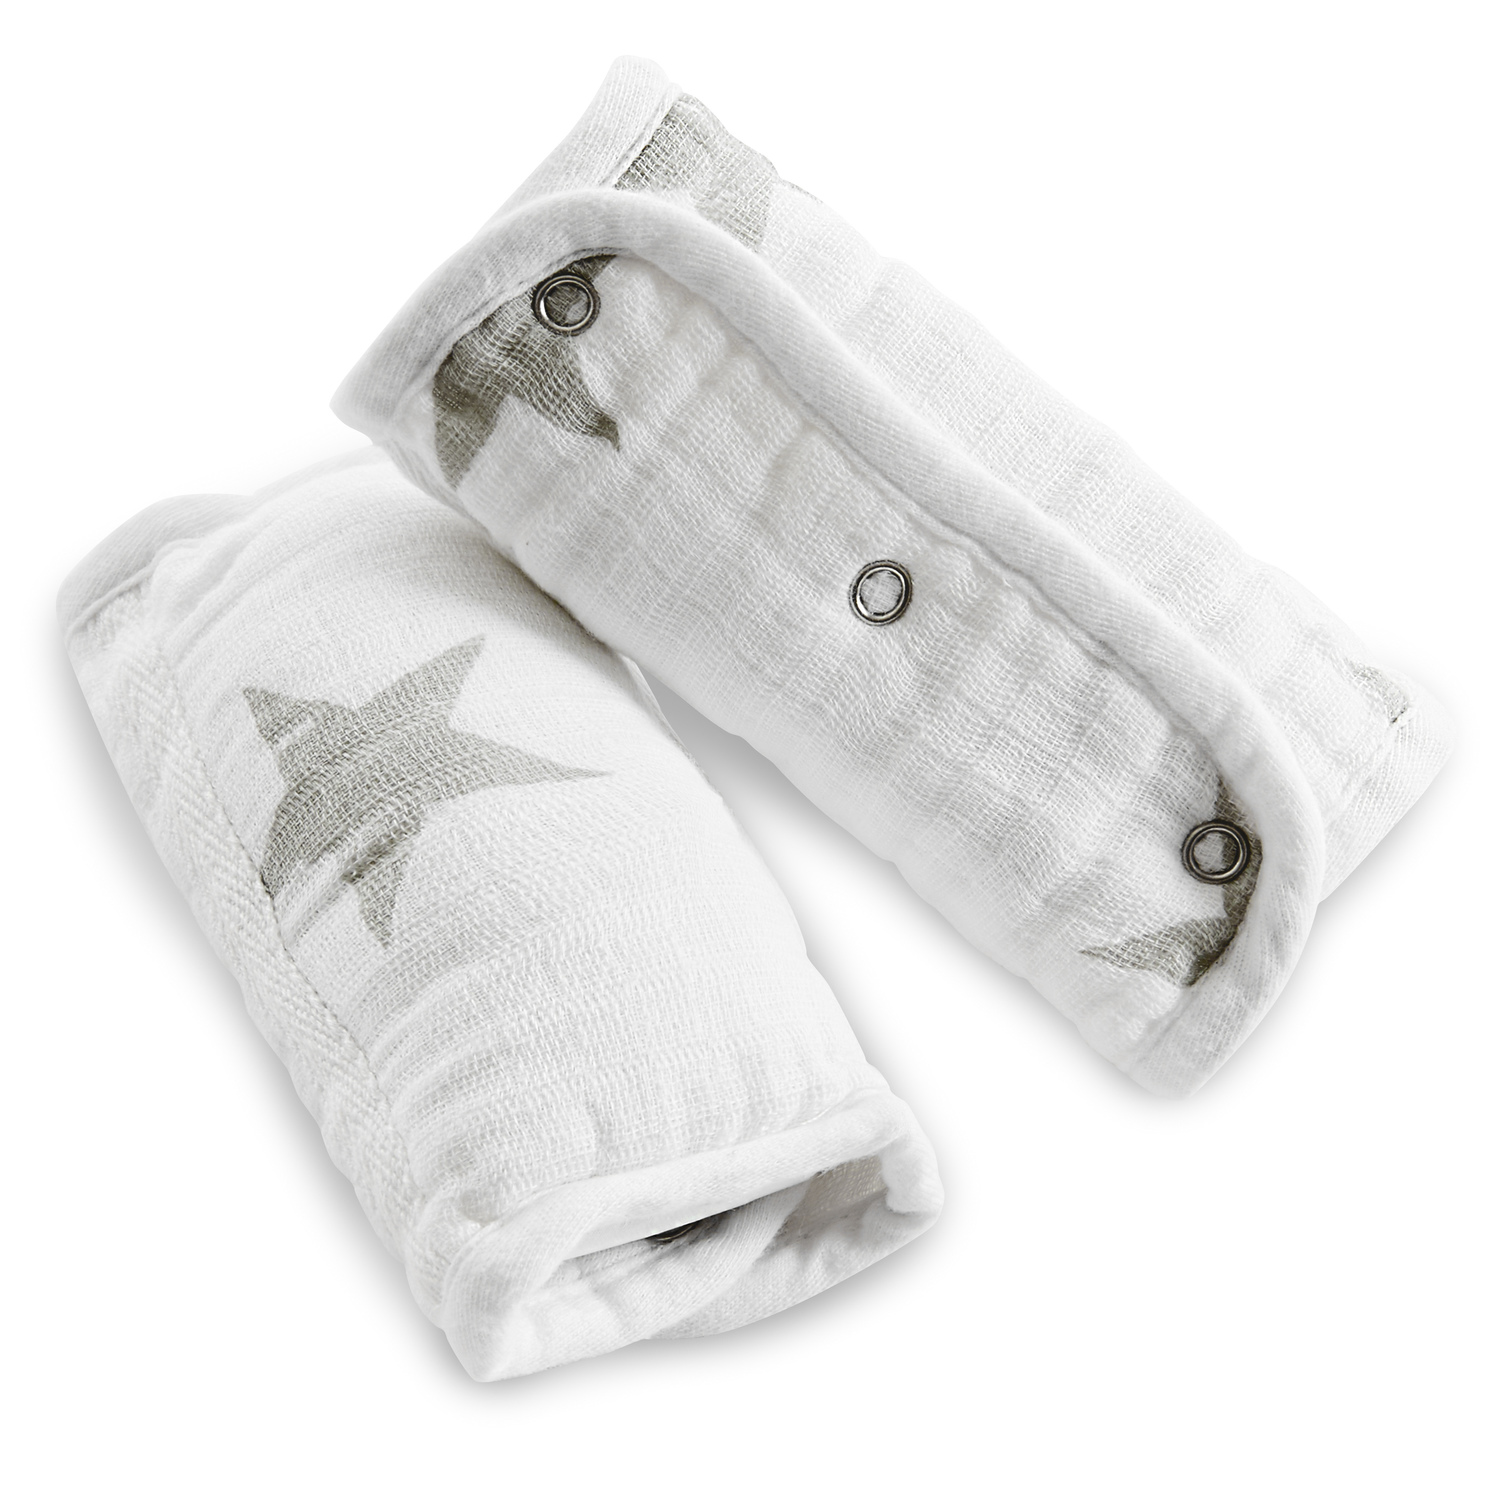 aden by aden + anais strap cover 2 pack, dusty